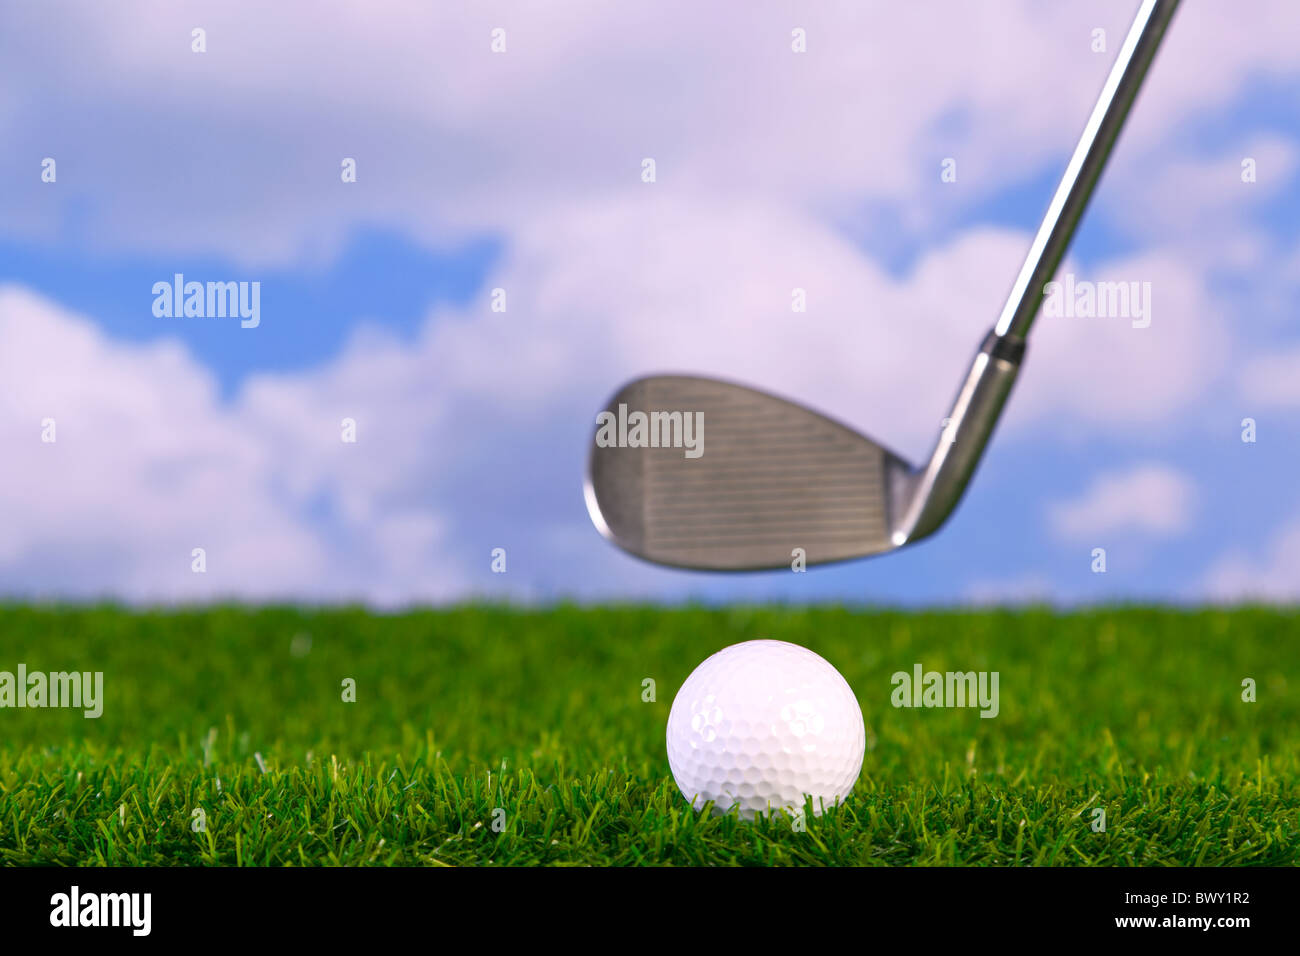 Surface level photo of an iron golf club in mid swing about to hit a ball on the fairway. - Stock Image